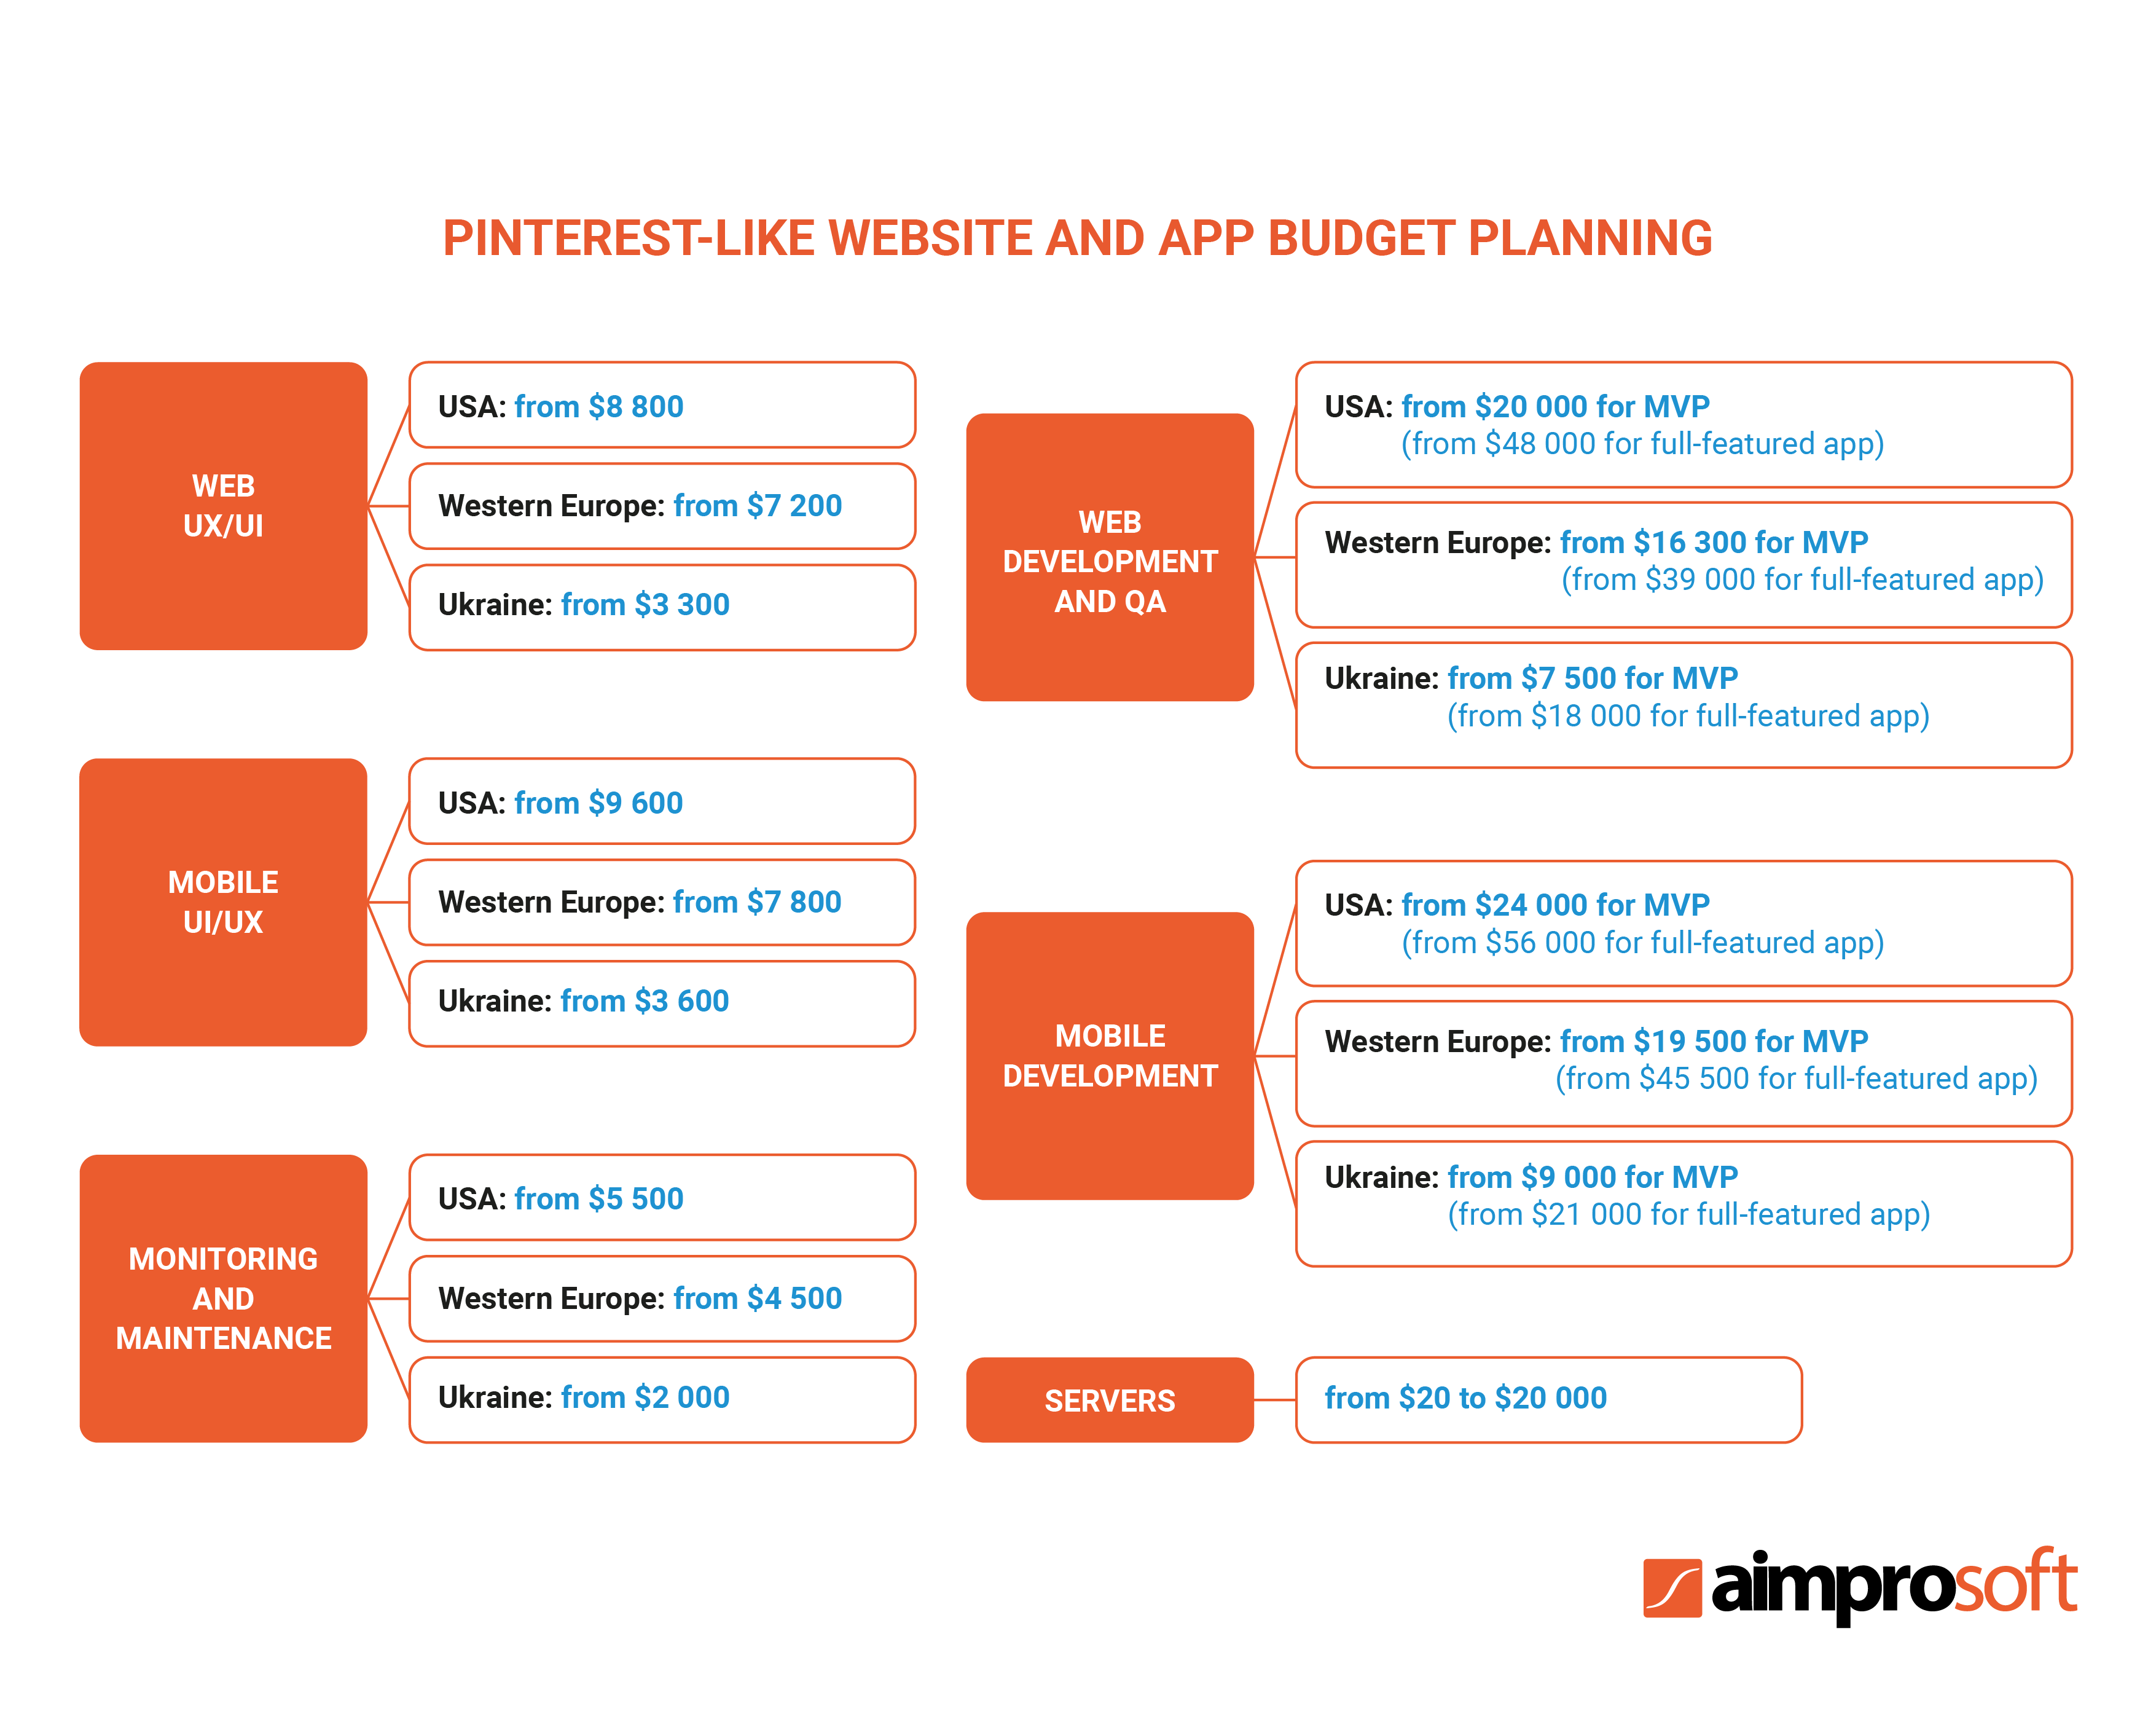 Pinterest-like website and app budget planning